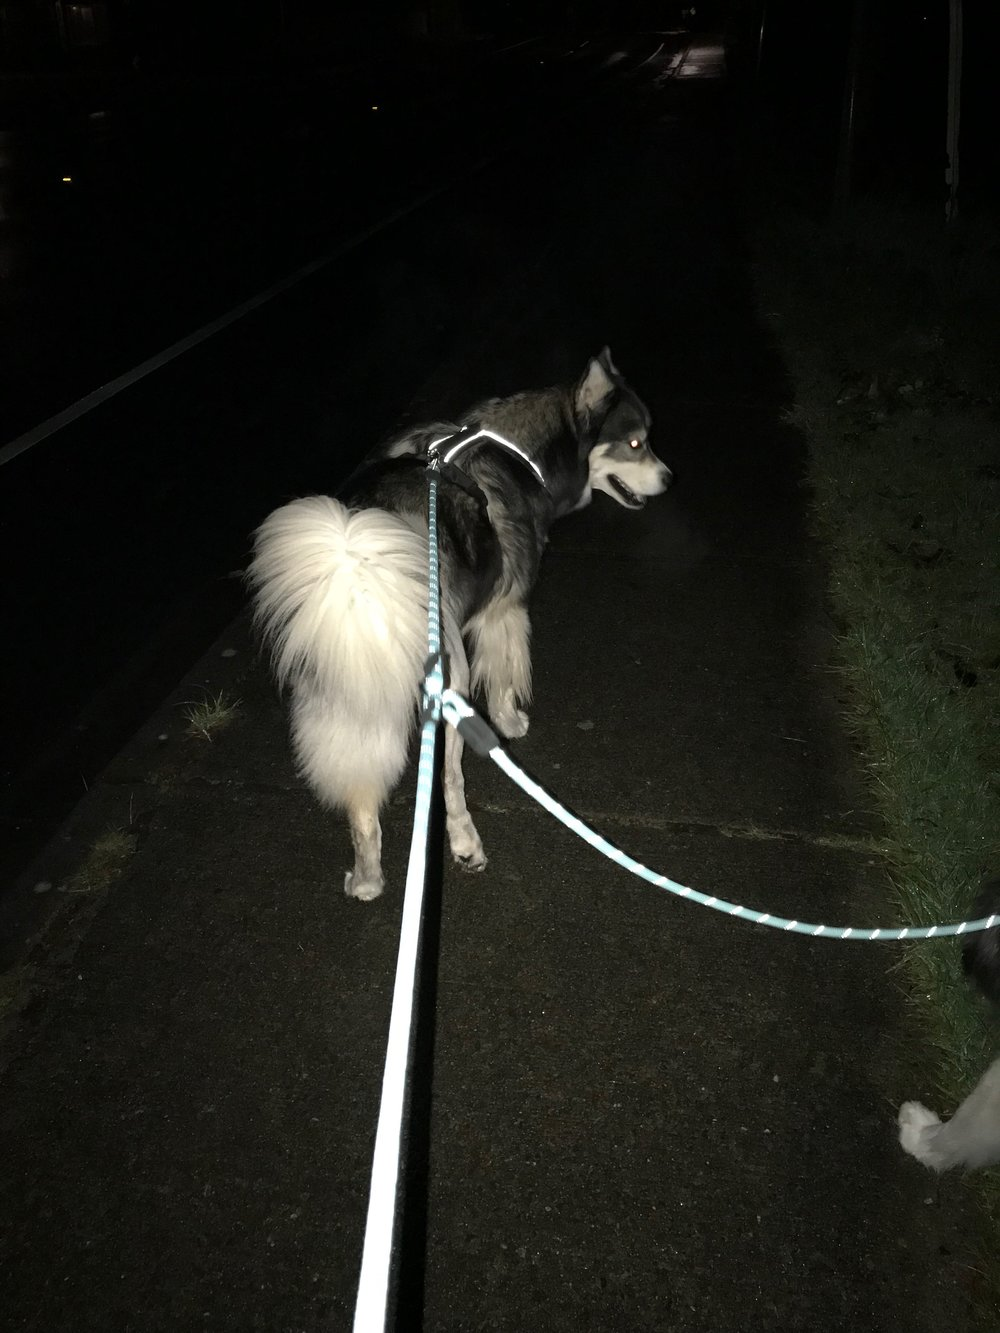 Nighttime walk